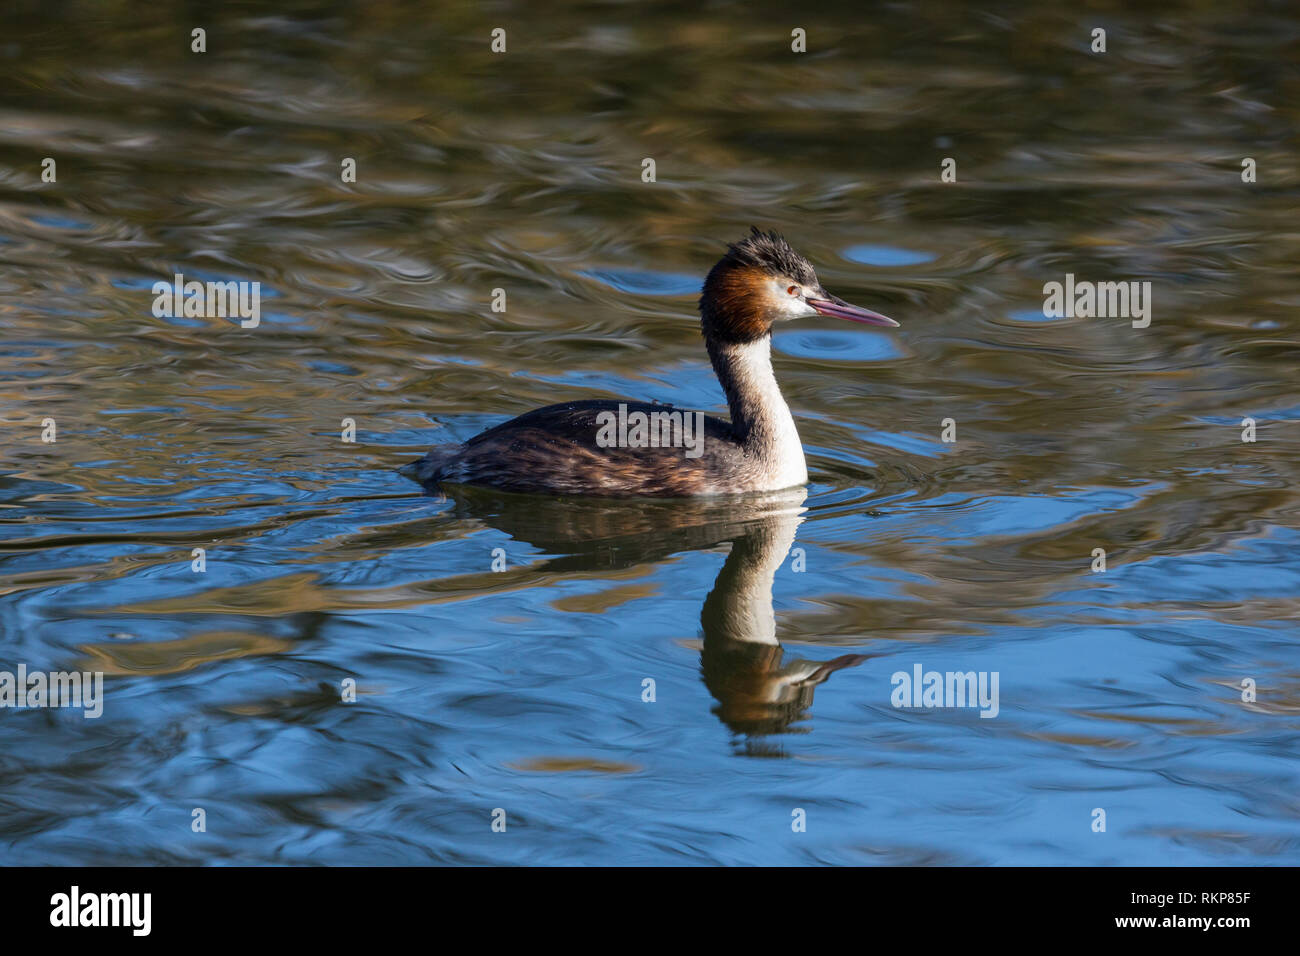 side view swimming great crested grebe (podiceps cristatus), water, reflections - Stock Image